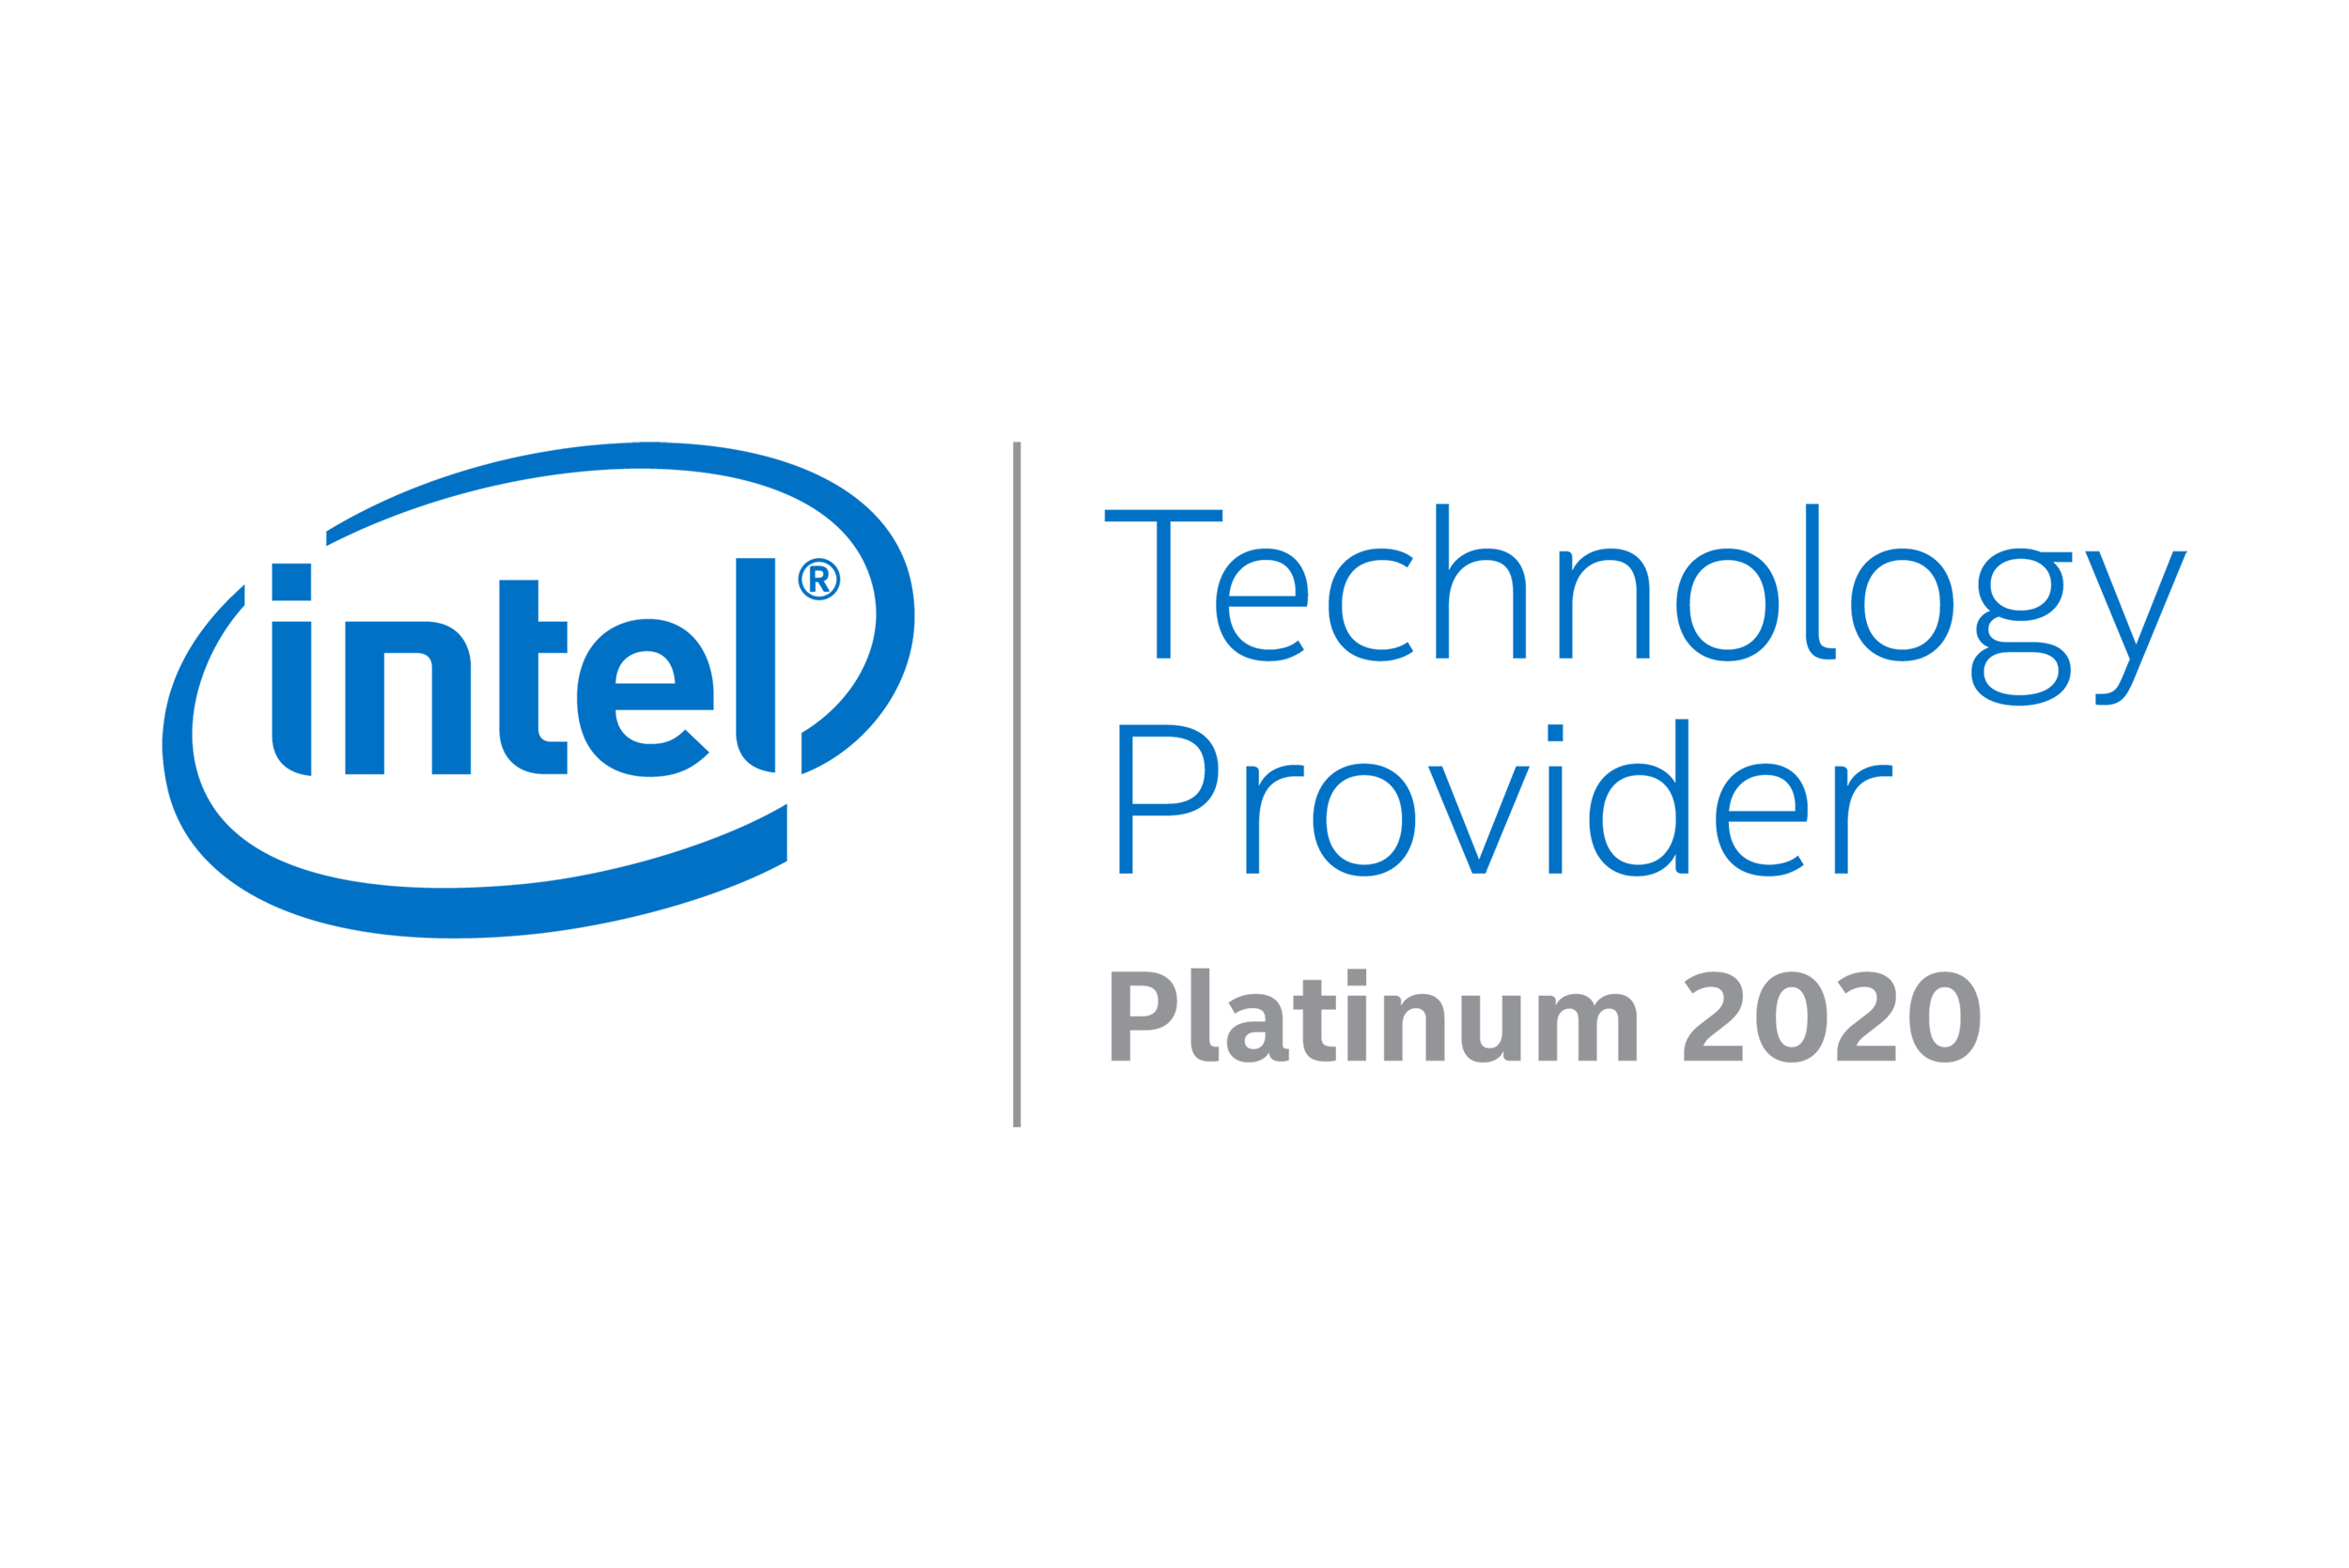 Intel Platinum Technology Provider 2020 - commerce schweiz gmbh